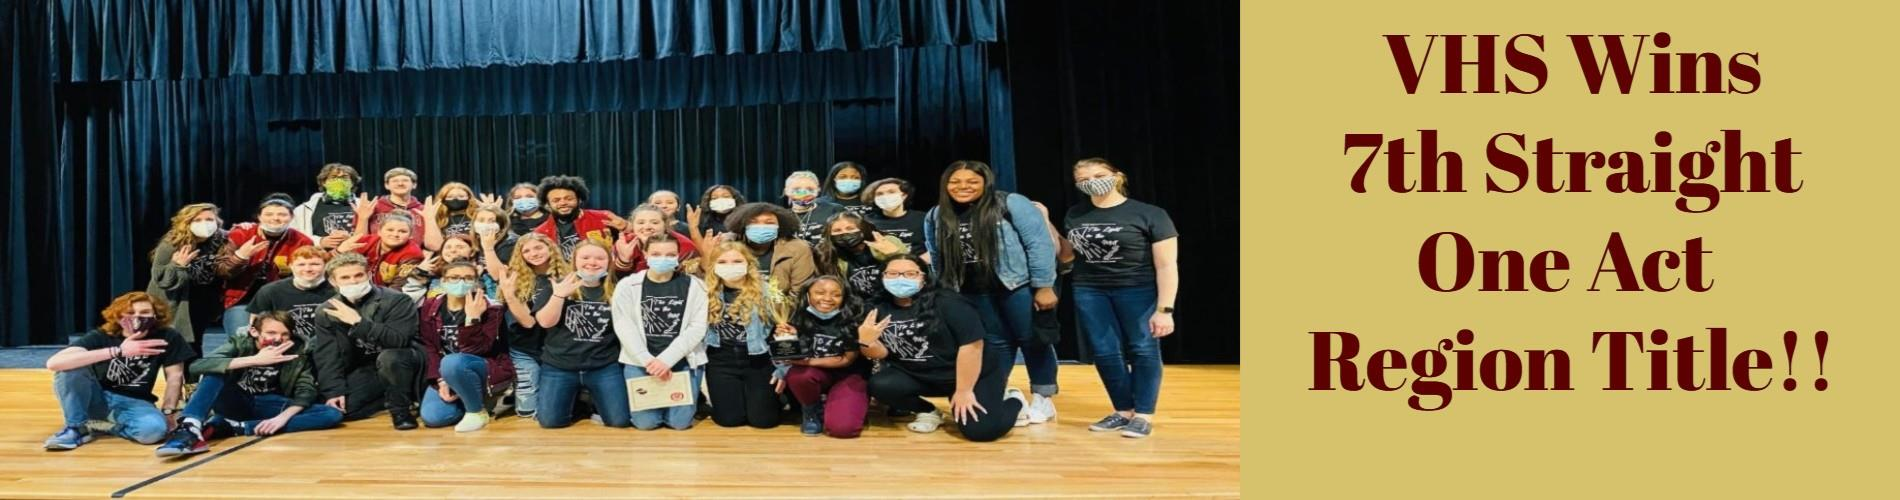 One Act Play Cast & Crew